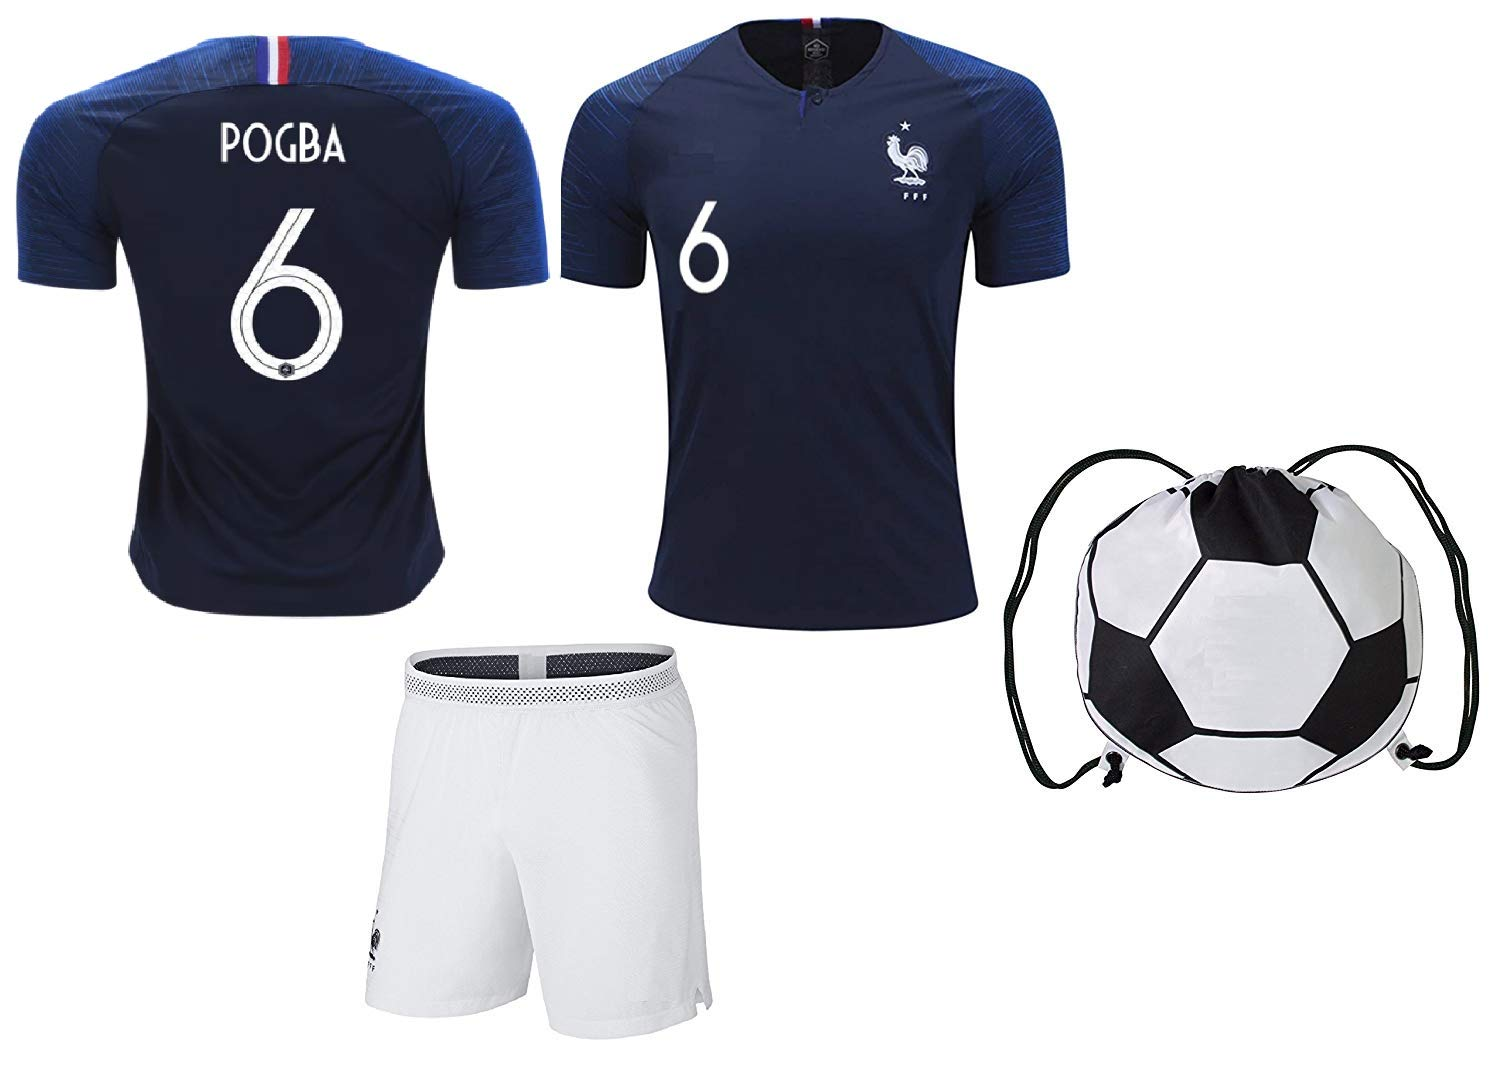 France Griezmann #7/Pogba #6 Soccer Jersey & Shorts Kids Youth Sizes Football World Cup Premium Gift Kit Set (YS 6-8 Years, Pogba #6 Jersey+Shorts)